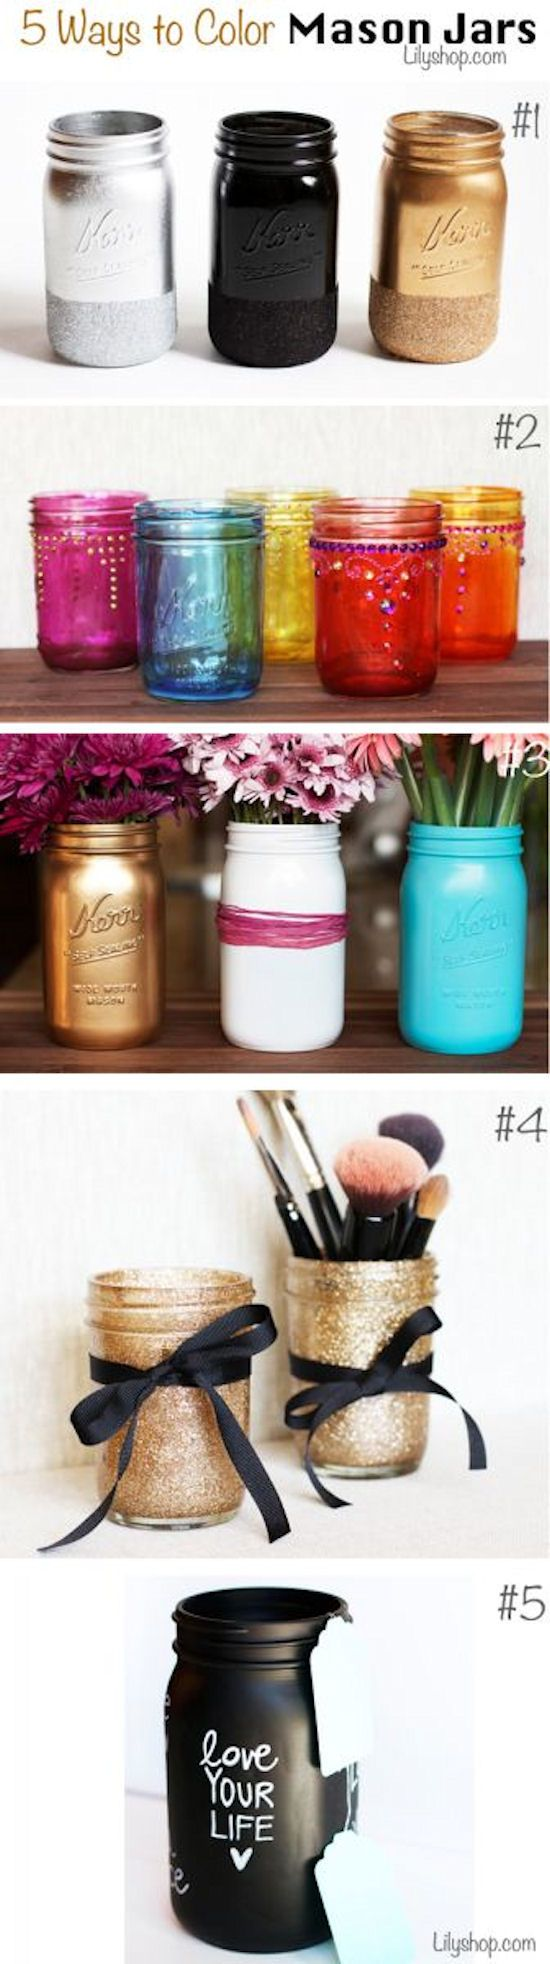 ways to color mason jars pictures photos and images for facebook